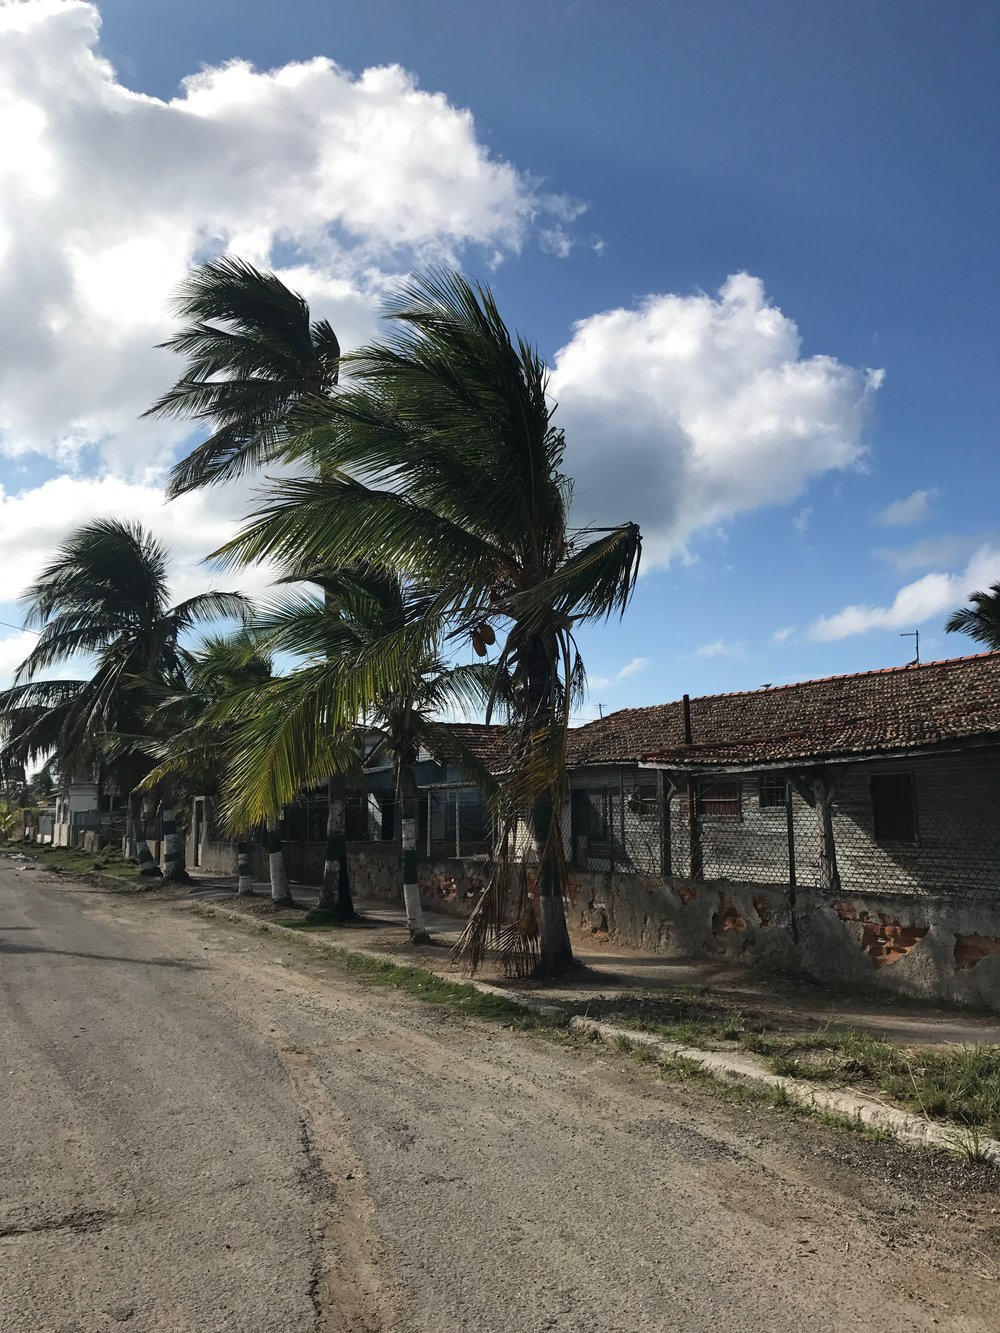 wandering the streets of guanabo, many of which were still filled with cleanup from hurricane irma